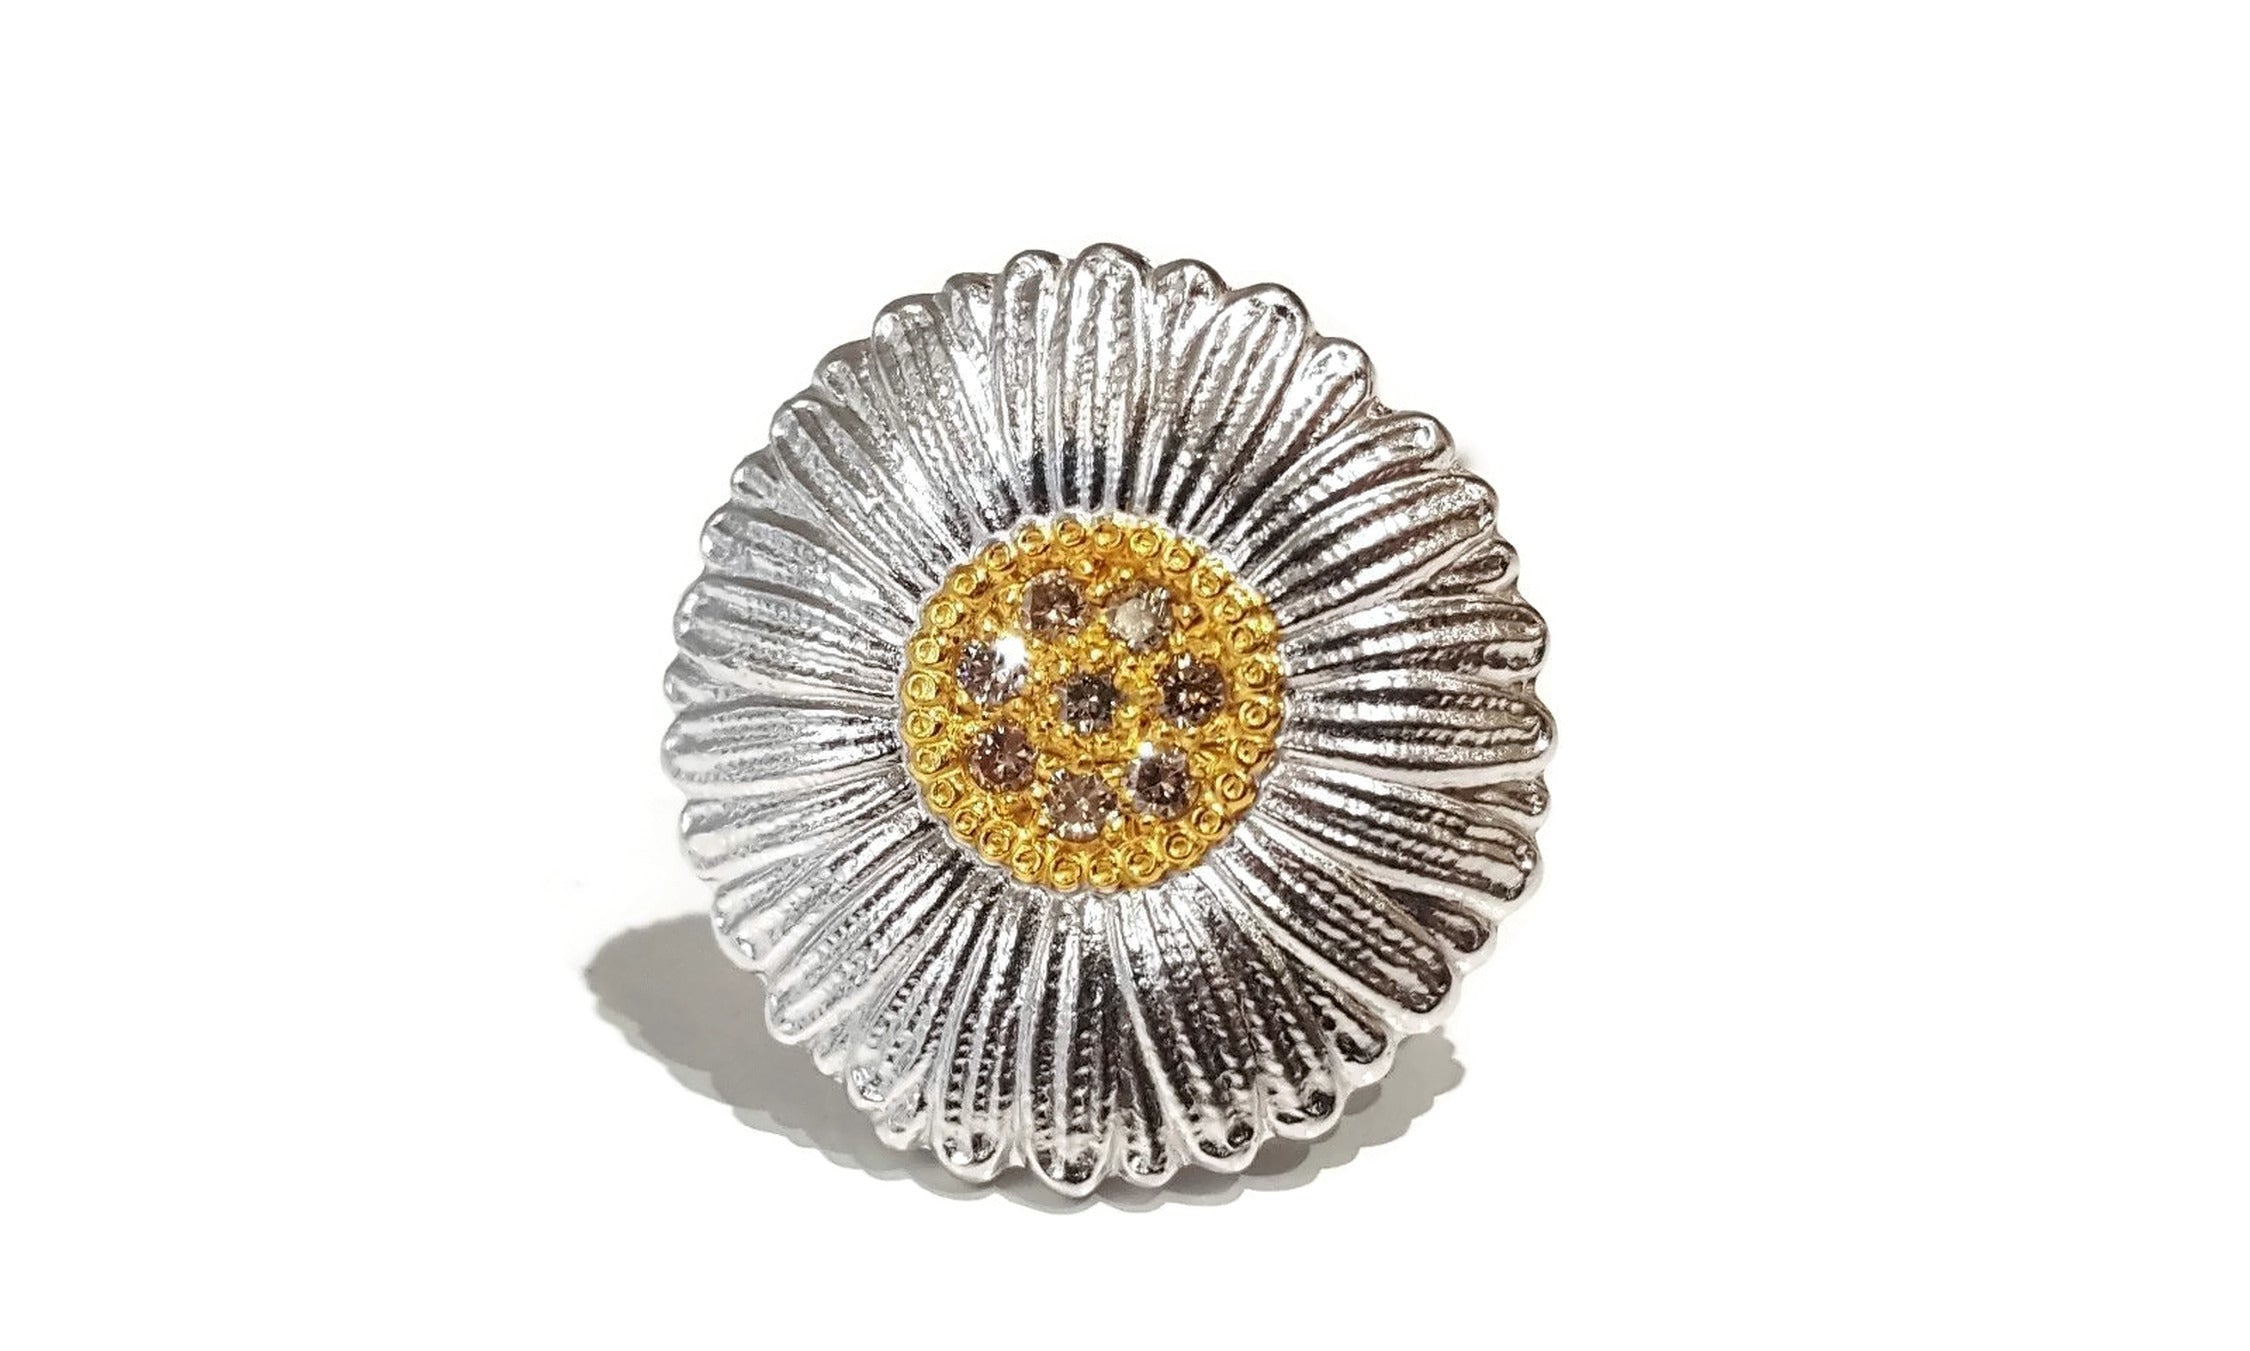 BUCCELLATI-BLOSSOMS-DAISY-RING-BROWN-DIAMONDS-STERLING-SILVER_1